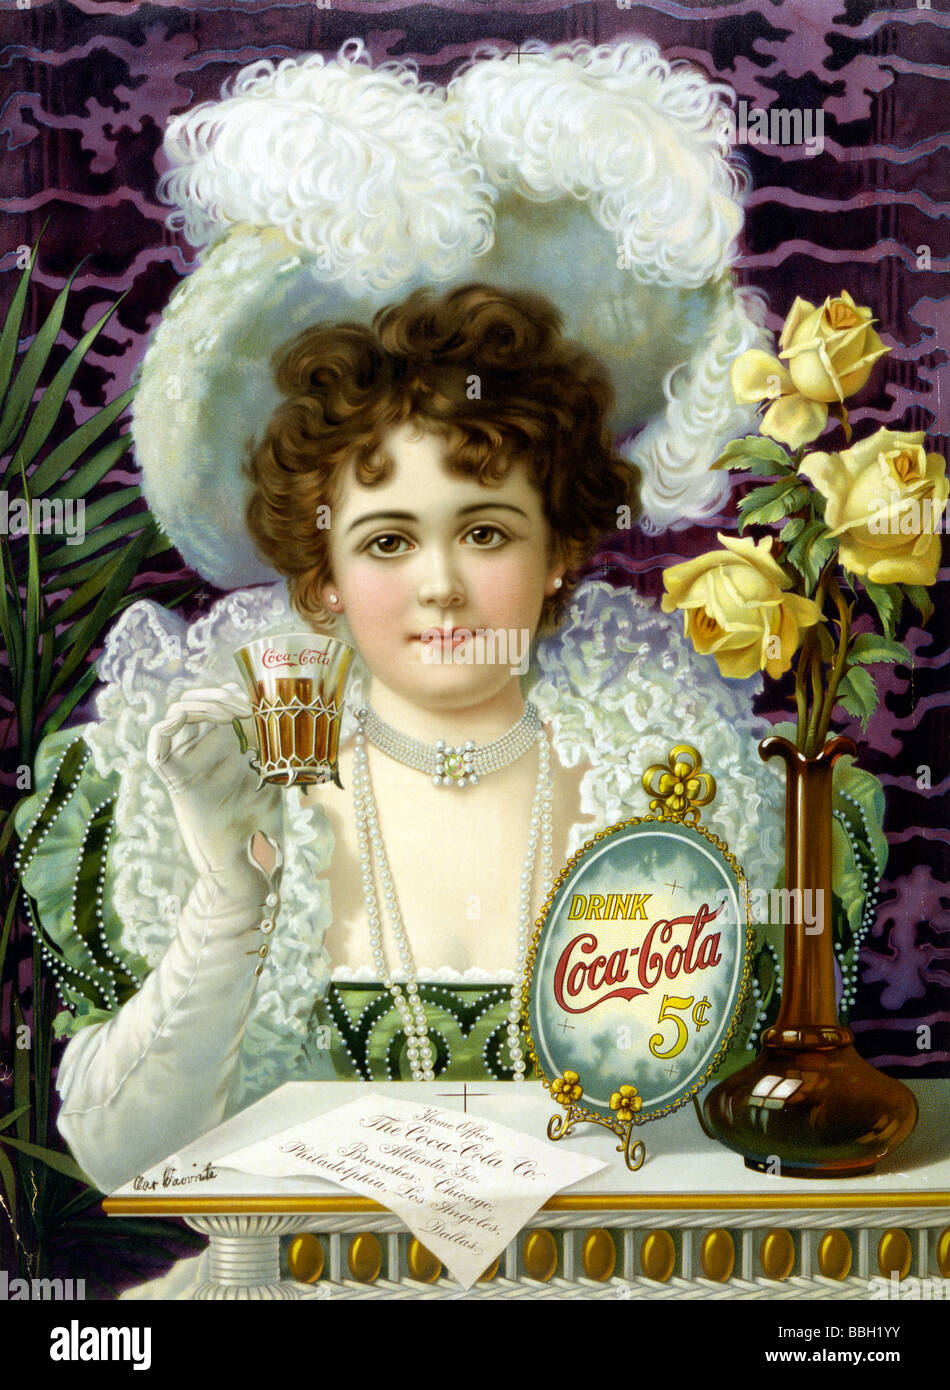 Promotional advert circa 1890s for Coca-Cola. - Stock Image